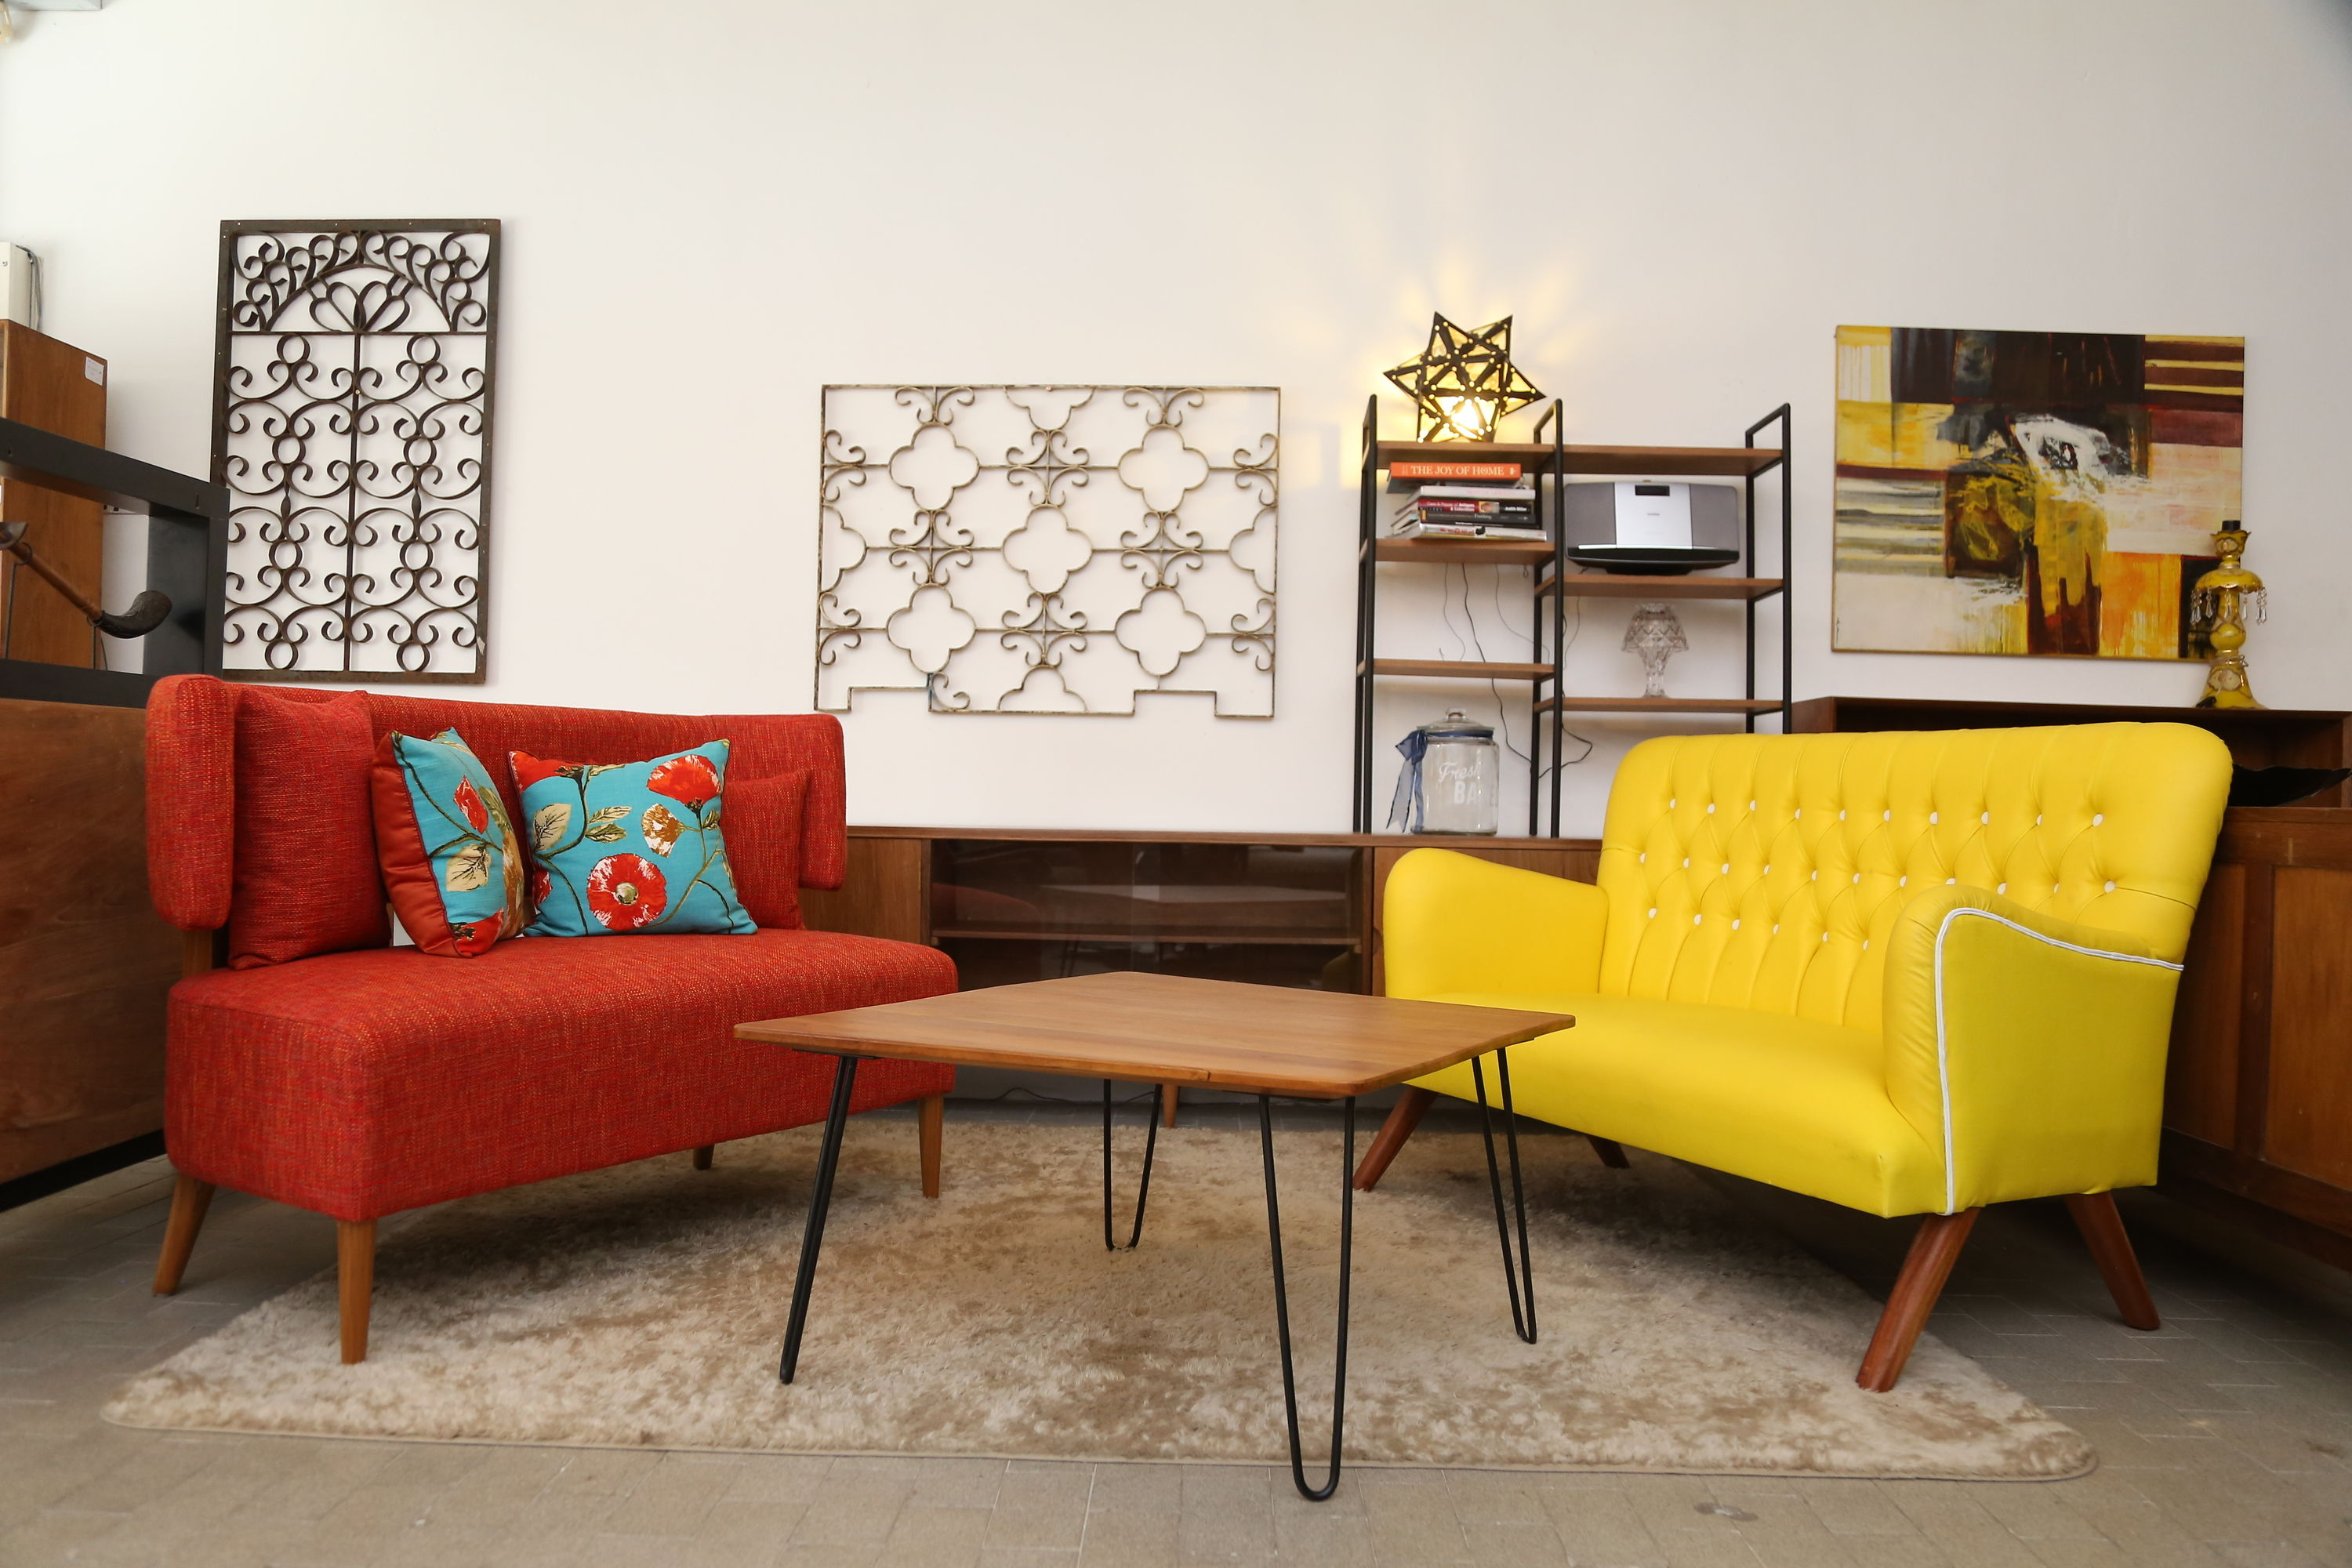 Home Shopping Alternatives to IKEA That Malaysians Need to Know